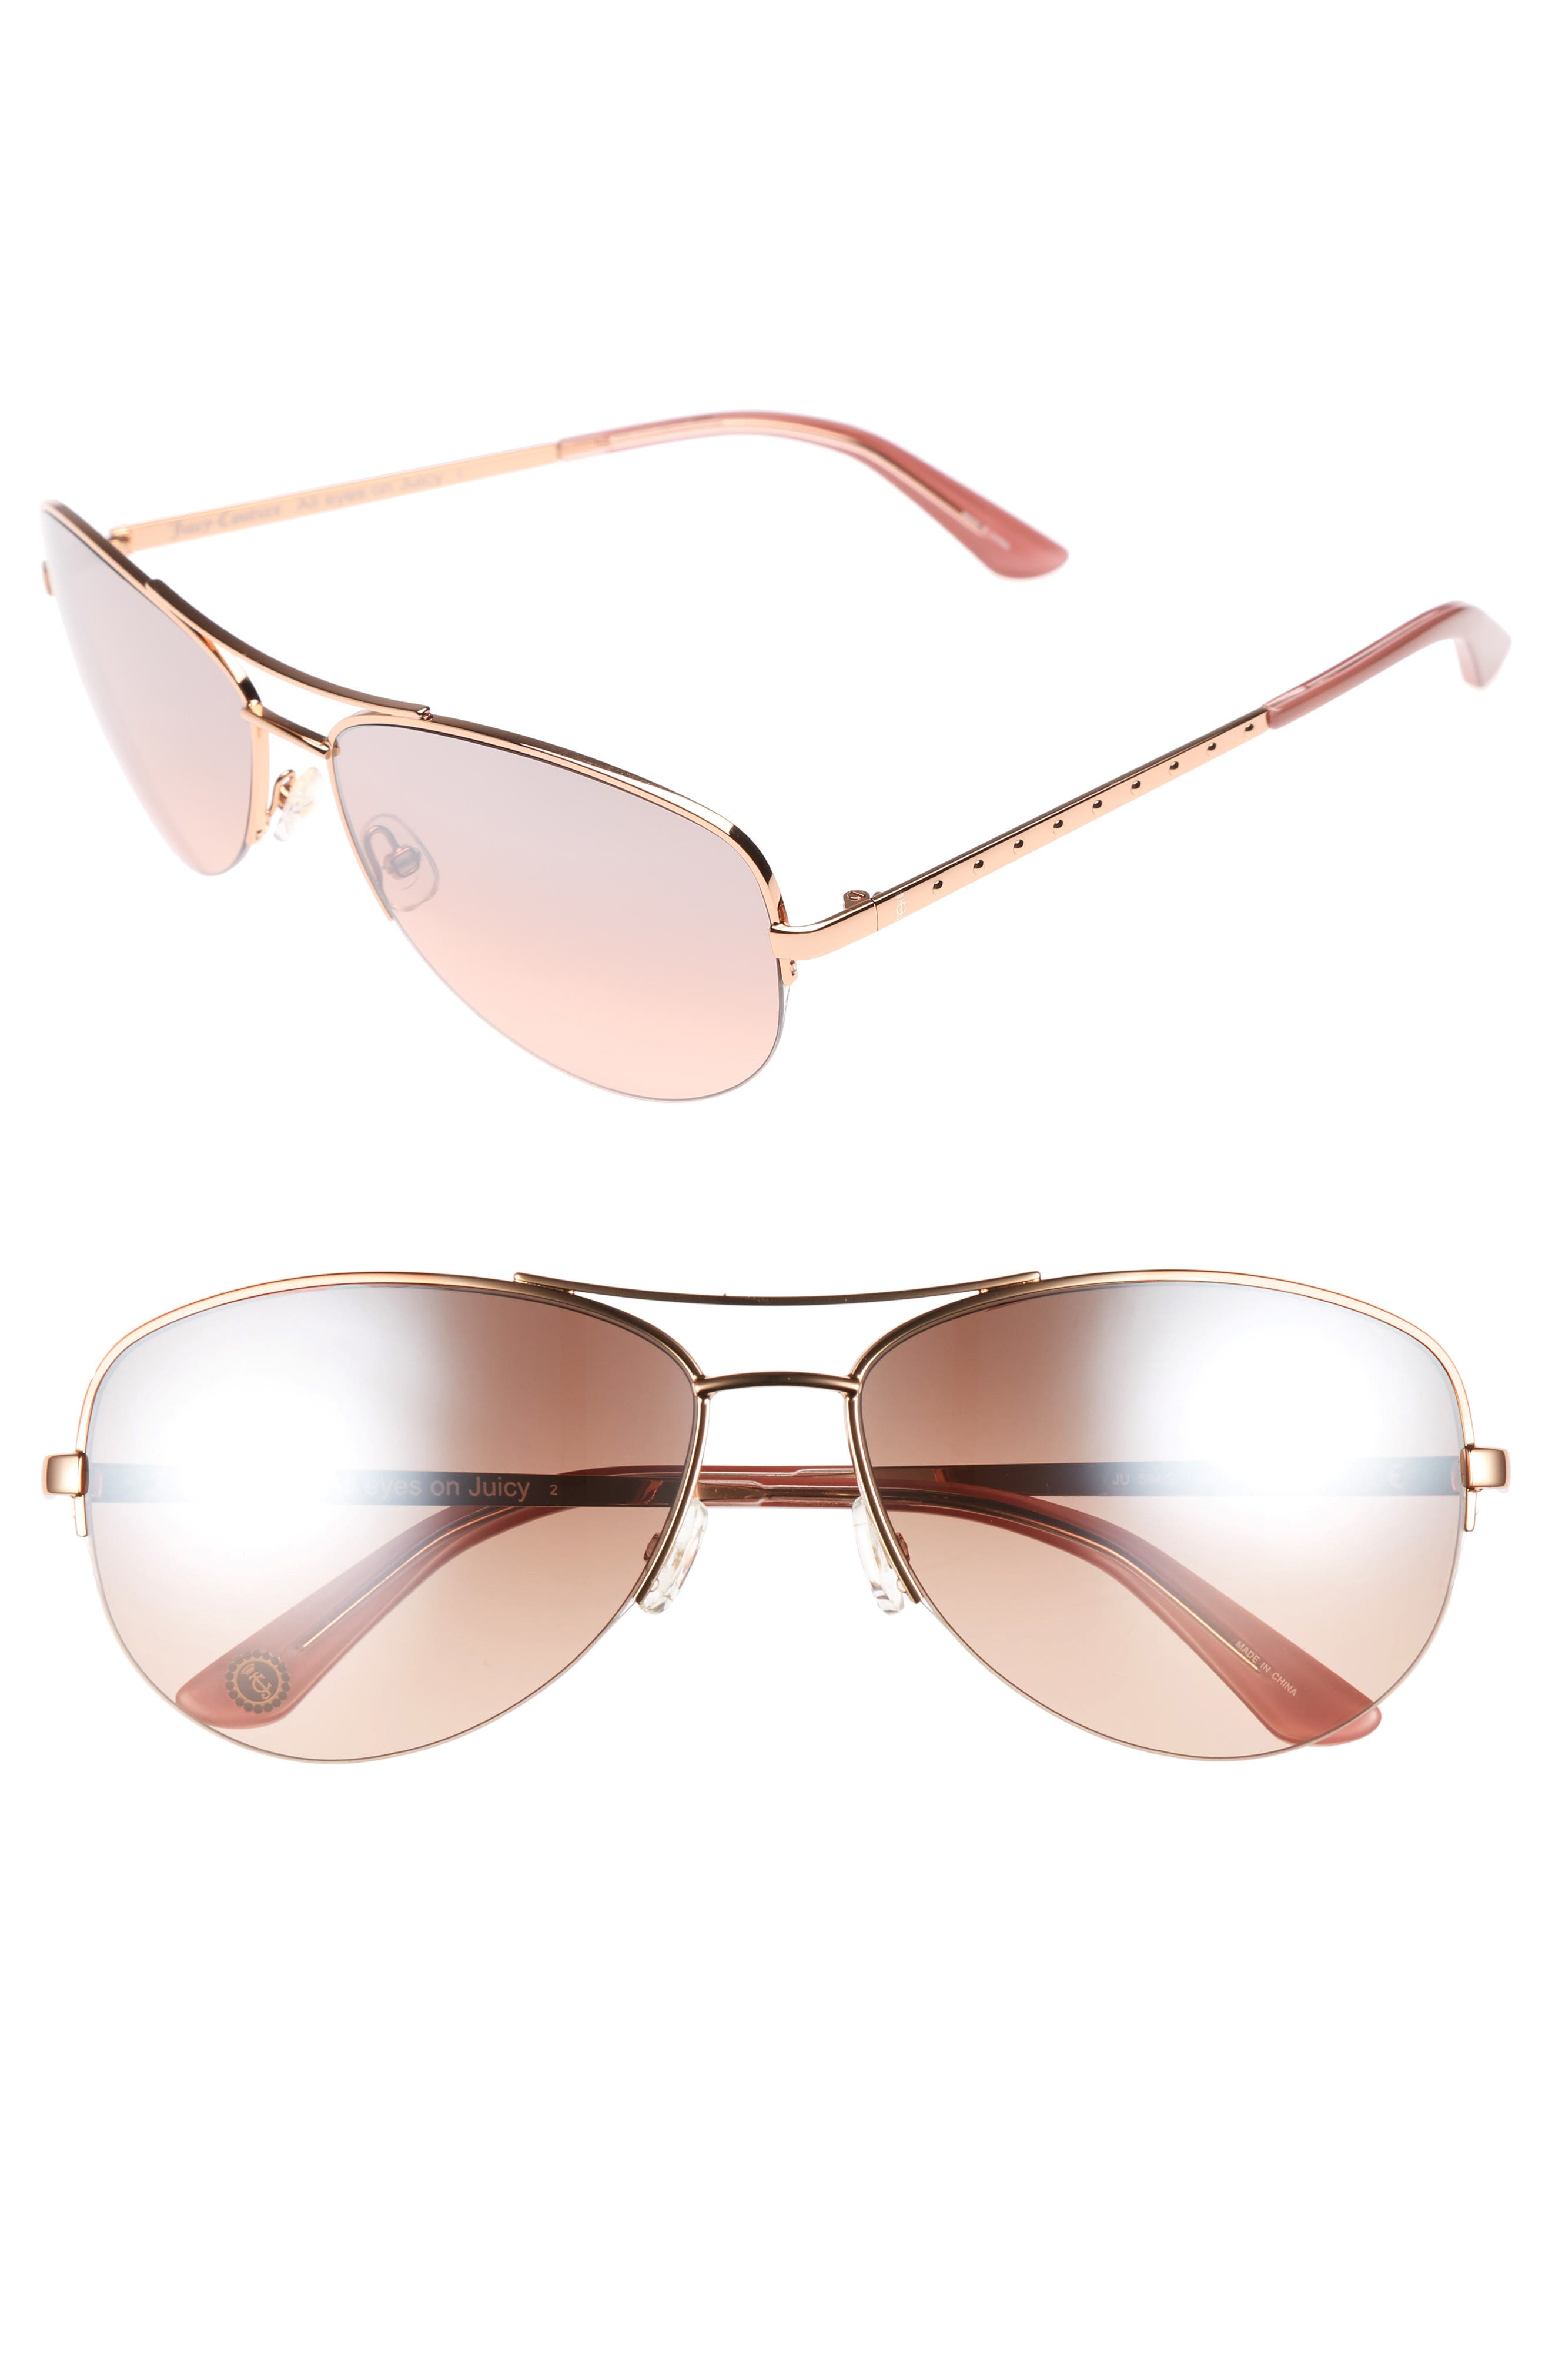 Shades of Couture by Juicy Couture 60mm Gradient Aviator Sunglasses